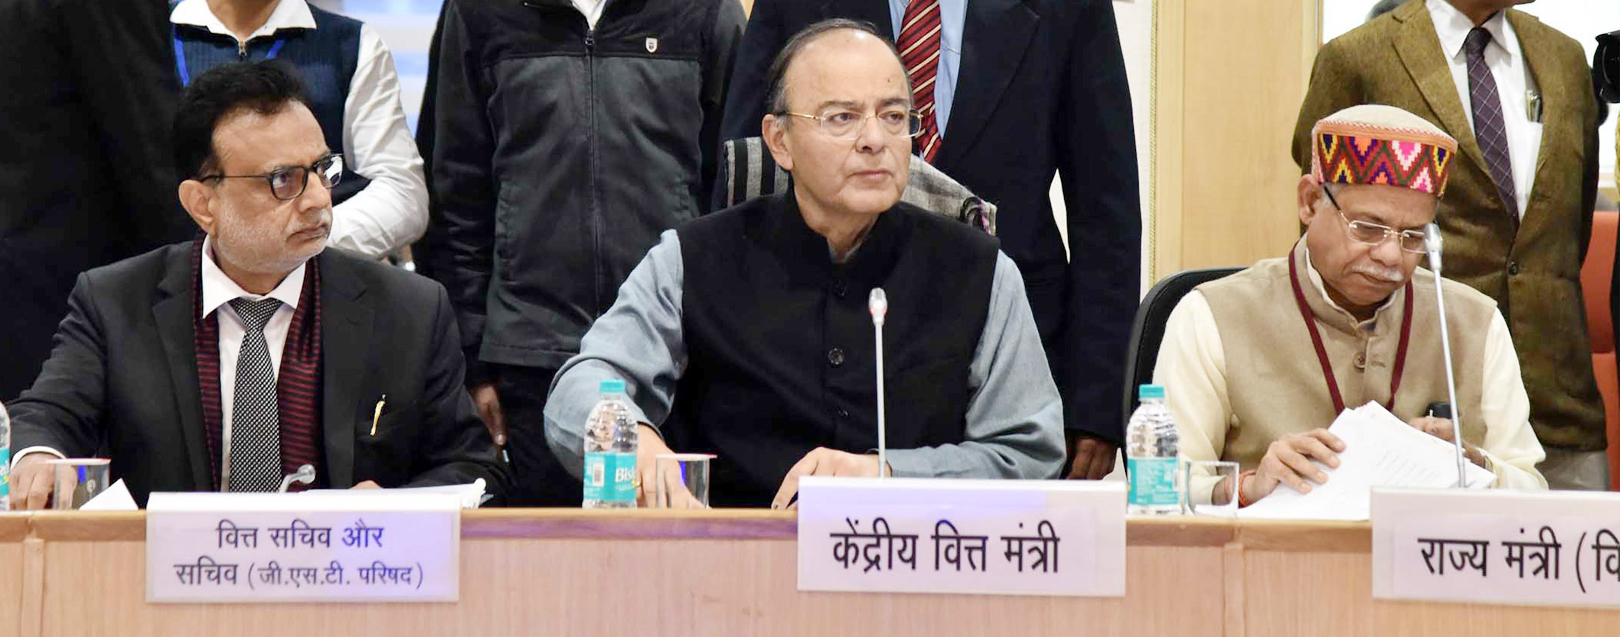 GST Council approves rate changes of 29 goods, 53 services, recommends policy changes